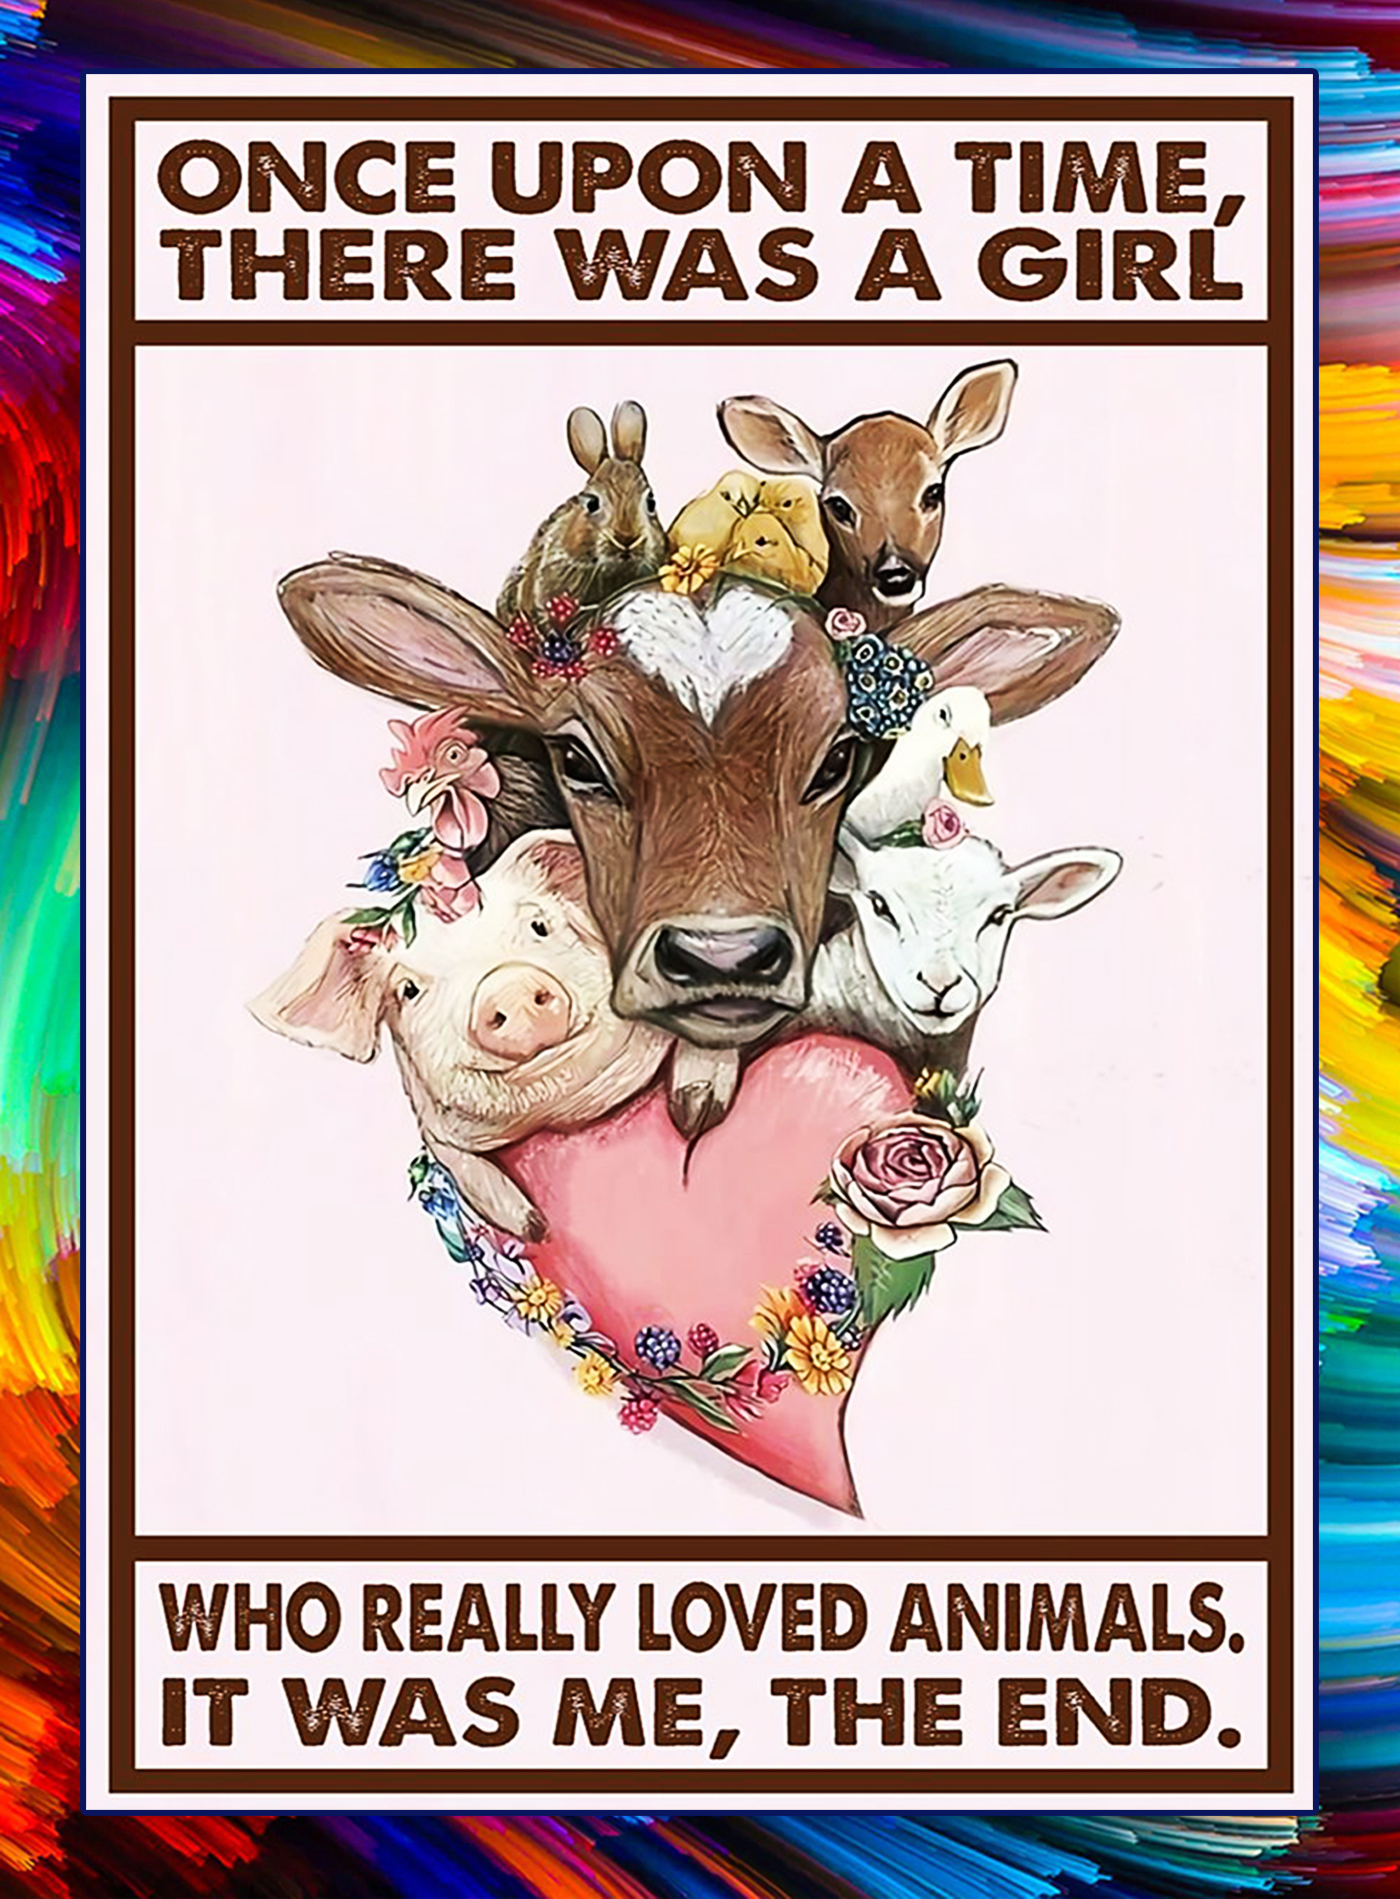 Vegan once upon a time there was a girl who really loved animals poster - A1